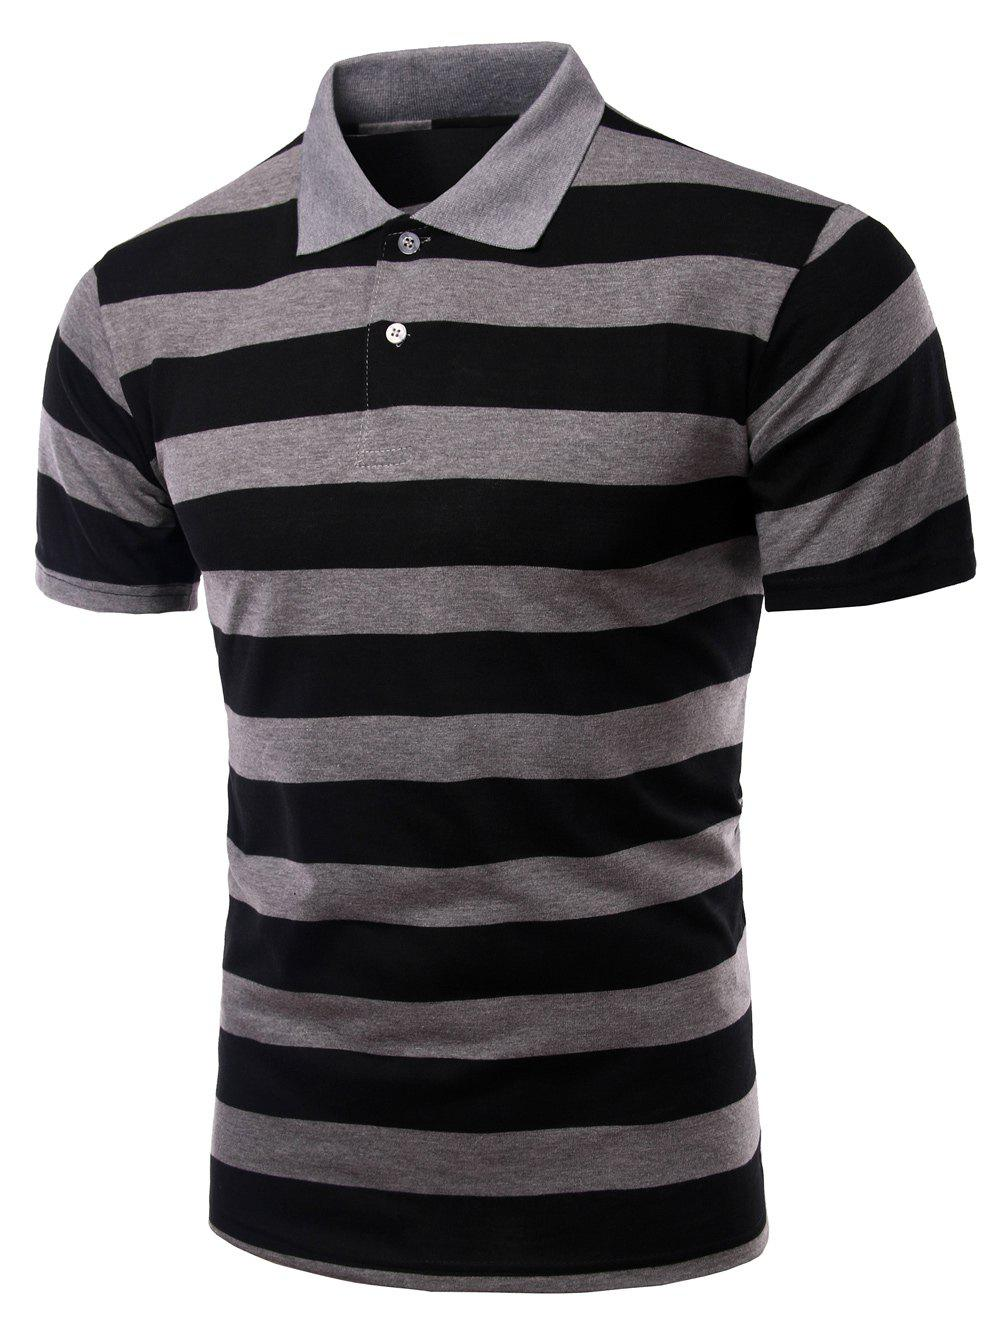 Men's Stripes Turn-down Collar Short Sleeves Polo T-Shirt - GRAY XL